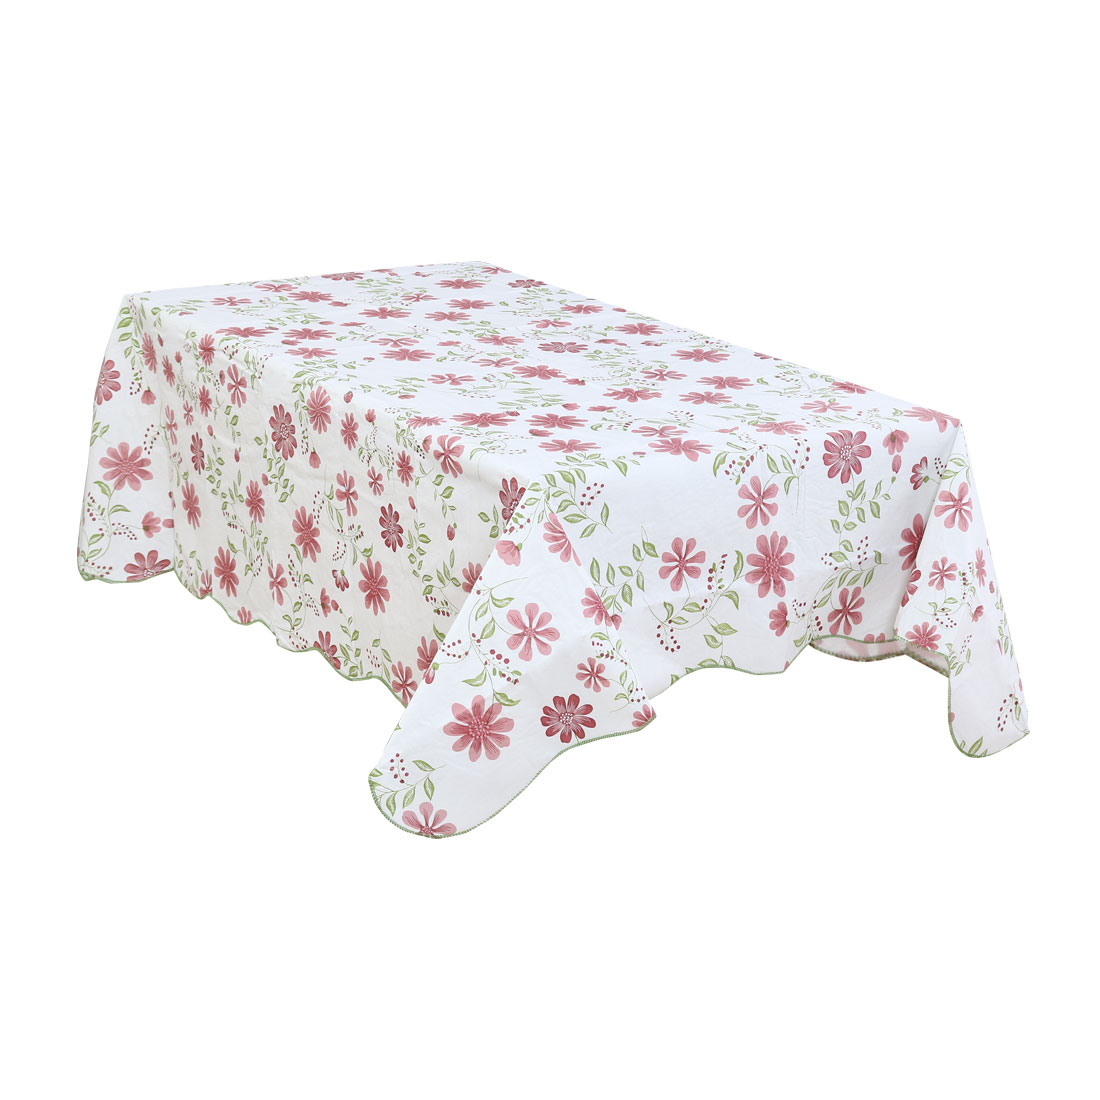 """Home Nine-petals Plastic Printed Oil Resistant Tablecloth Square Red 60""""x60"""""""